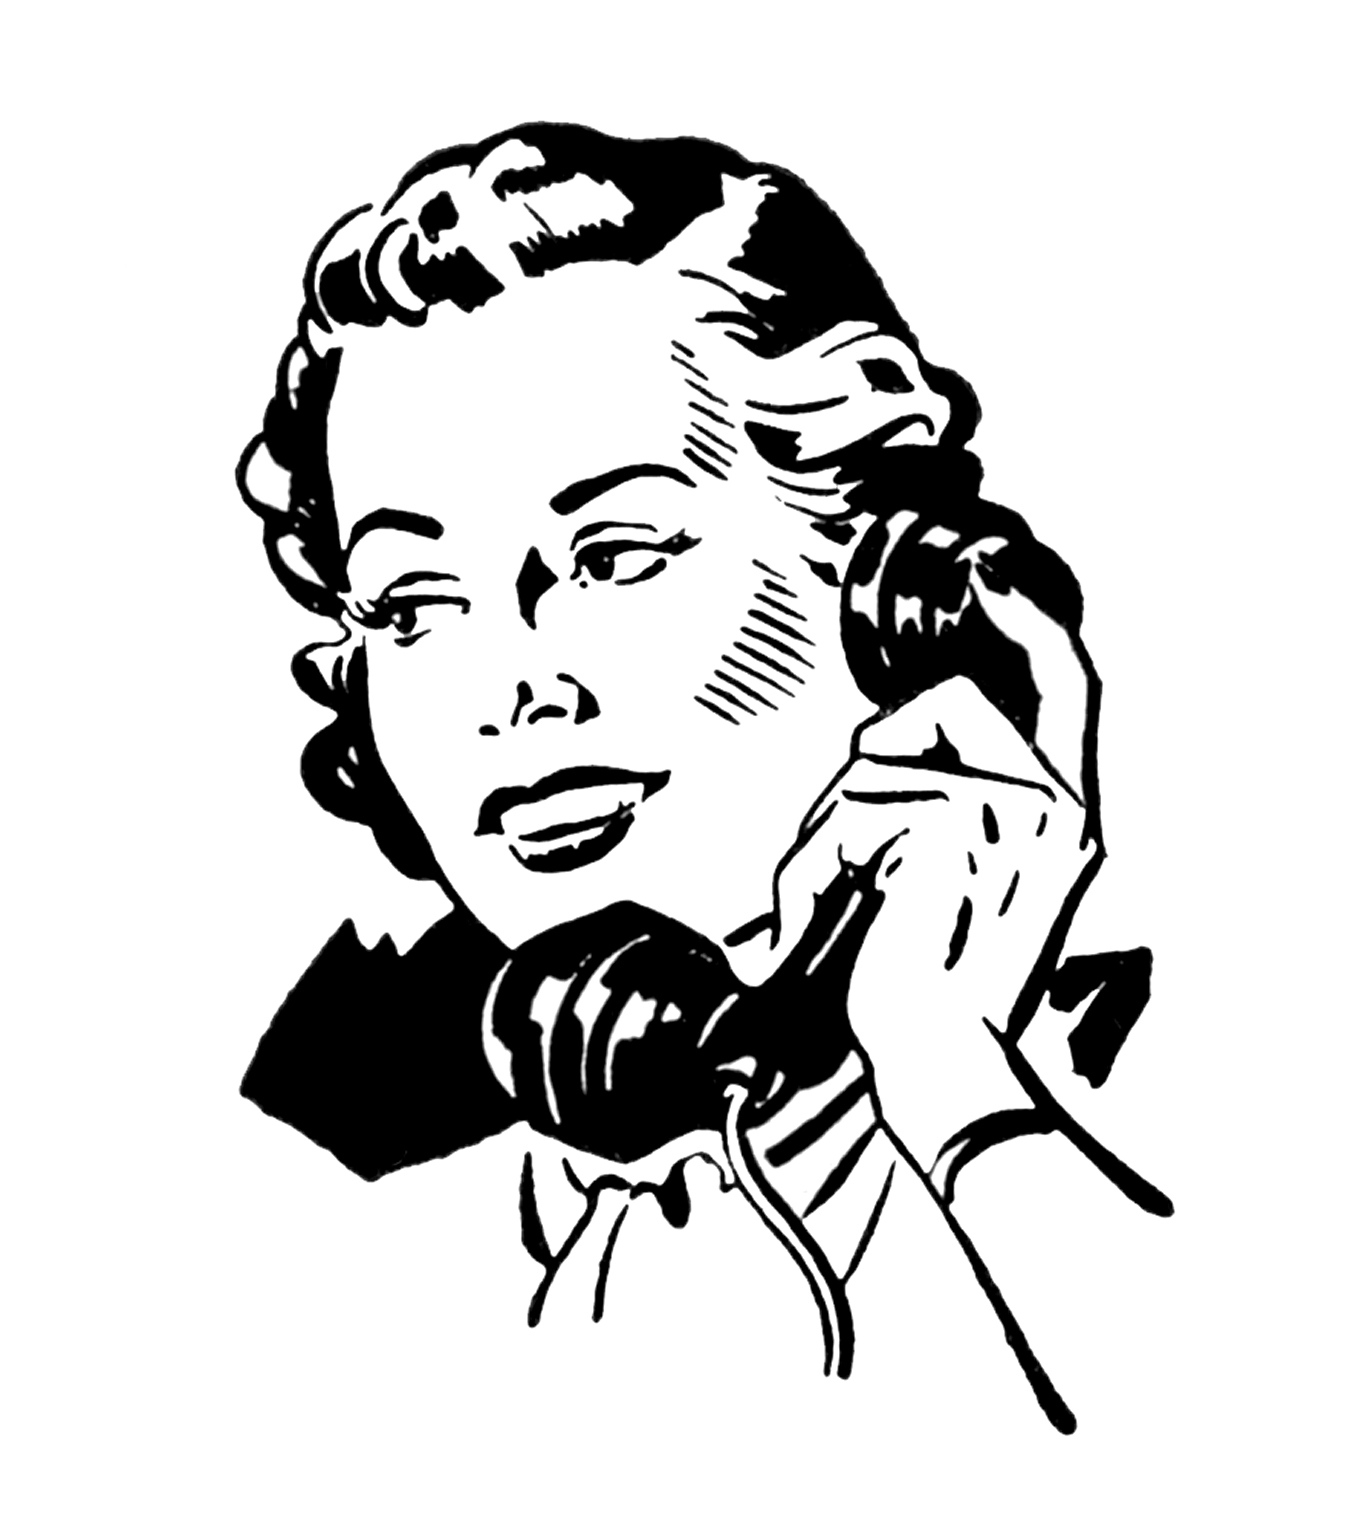 vintage telephone clipart - photo #30